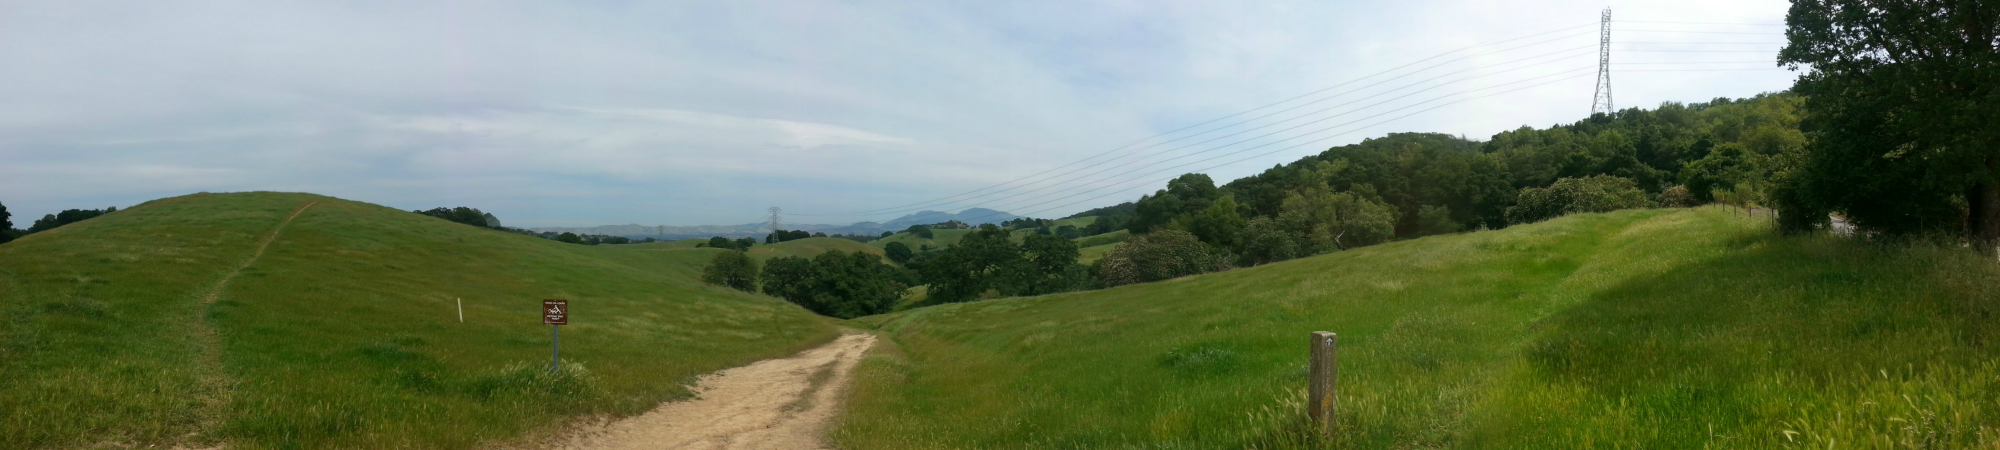 A panoramic shot looking East. Mount Diablo is visible in the background.